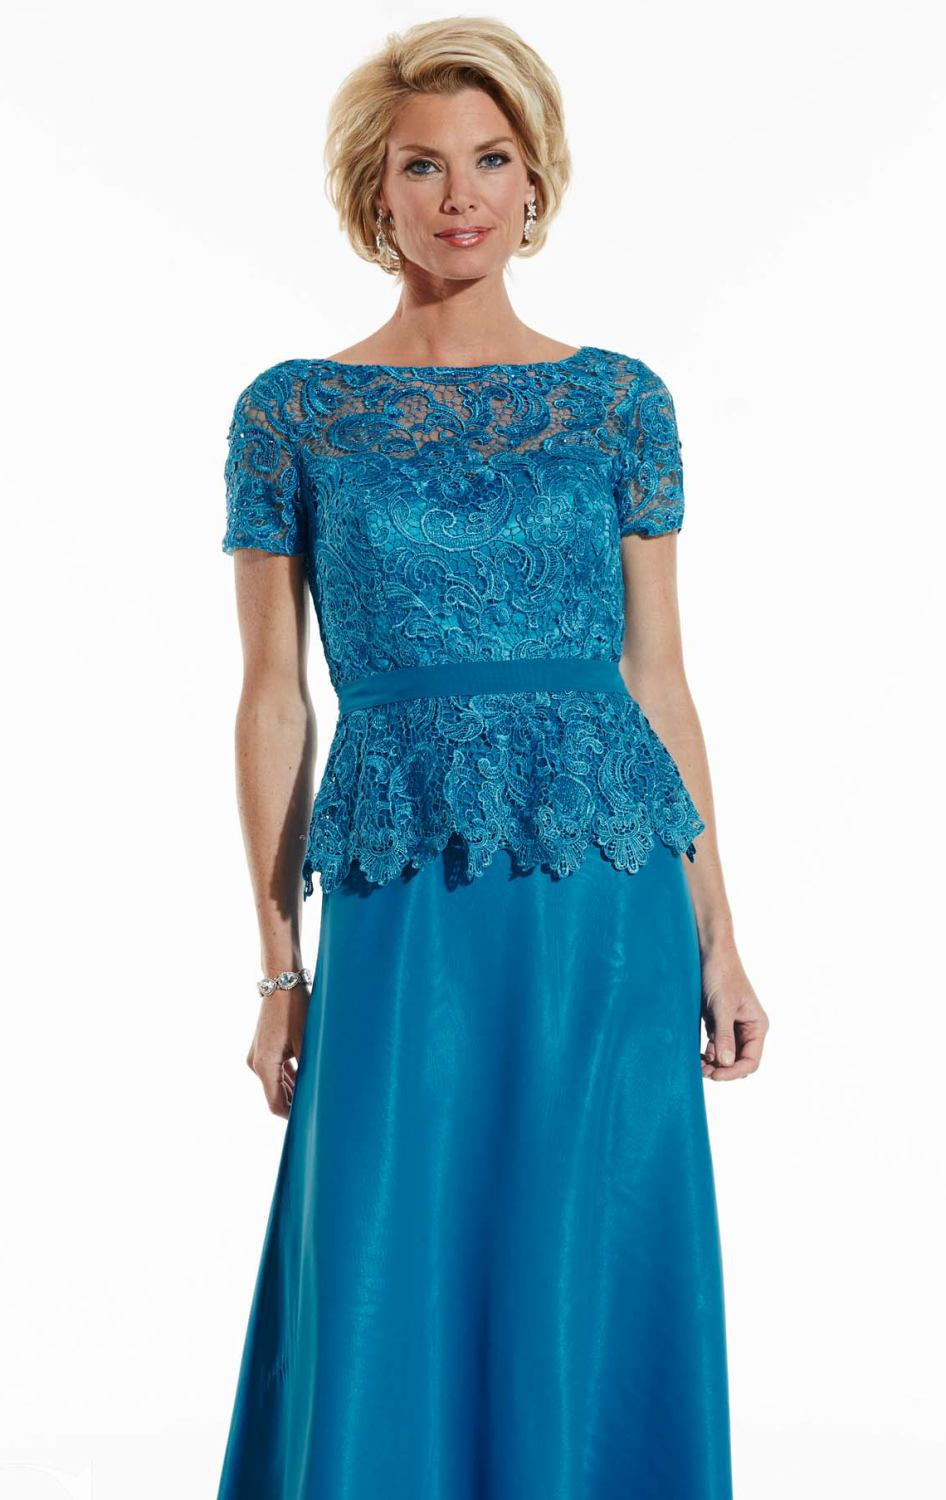 469049b30a6 Elegant Blue Lace Short Sleeve Plus Size Mother Of The Bride Dresses 2017  Summer Style Cheap Mother Pant Suits Cheap Prom Gowns-in Mother of the Bride  ...